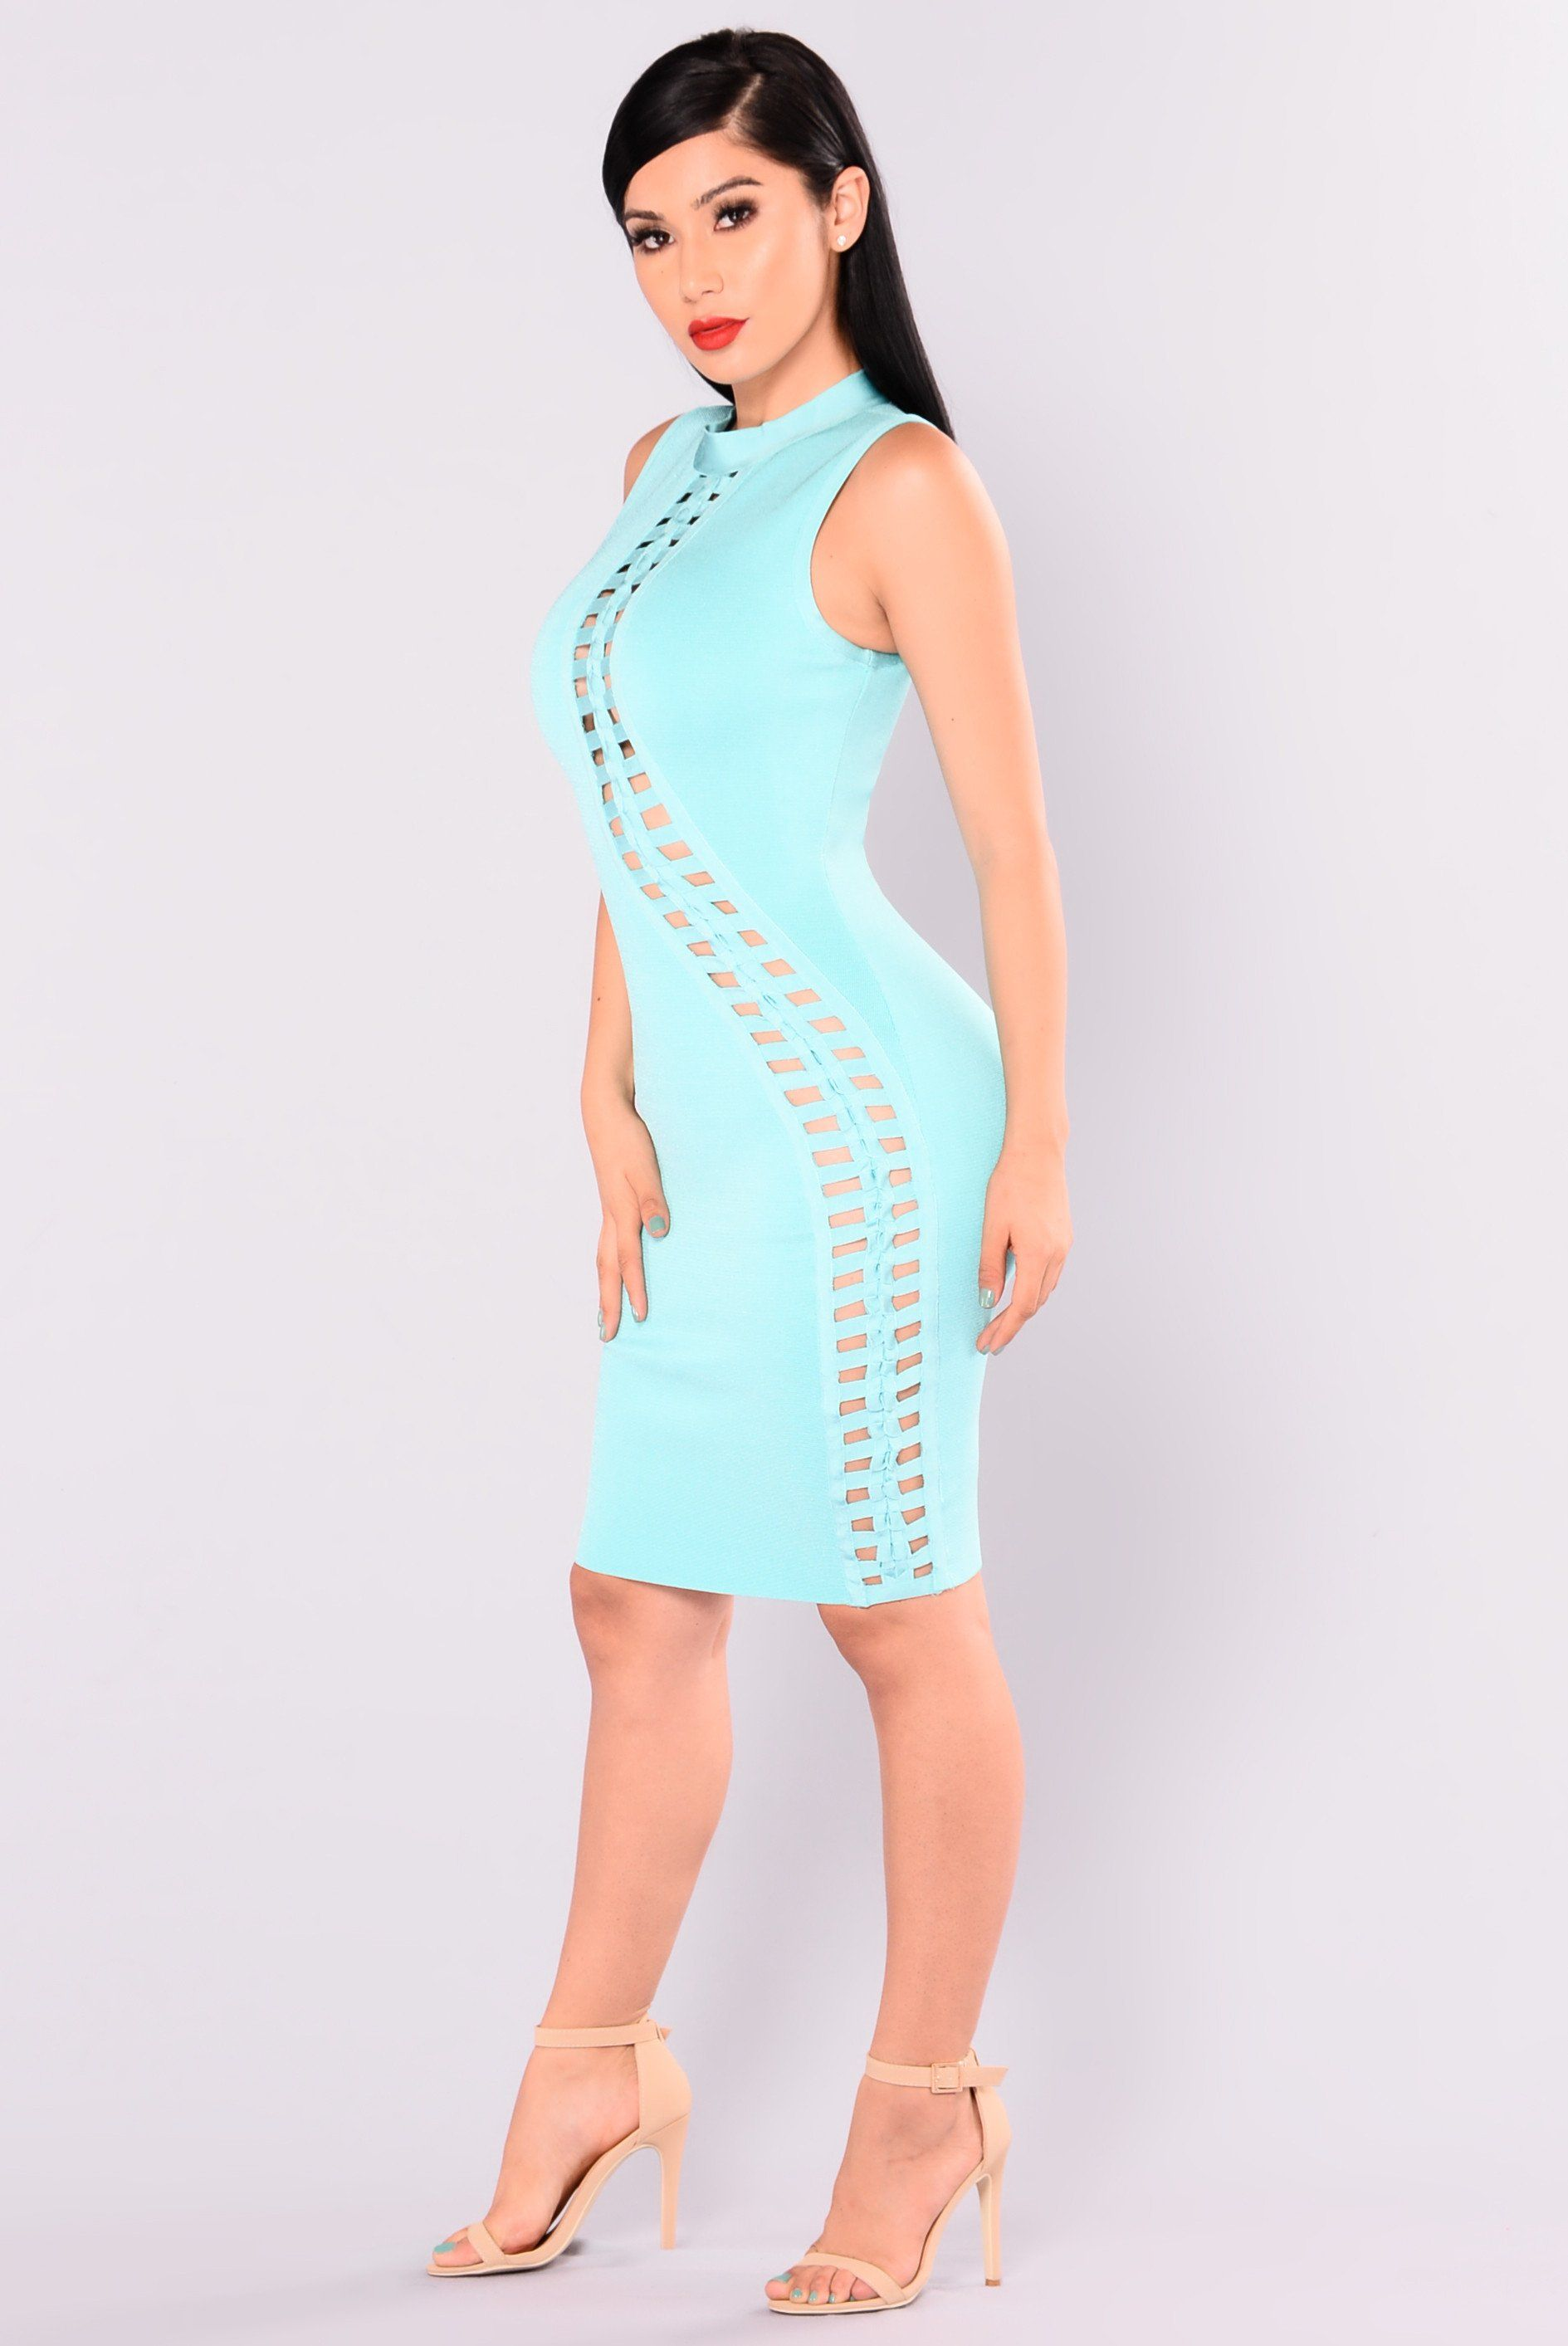 Party Monster Bandage Dress - Jade | Jade, Exotic women and Exotic ...